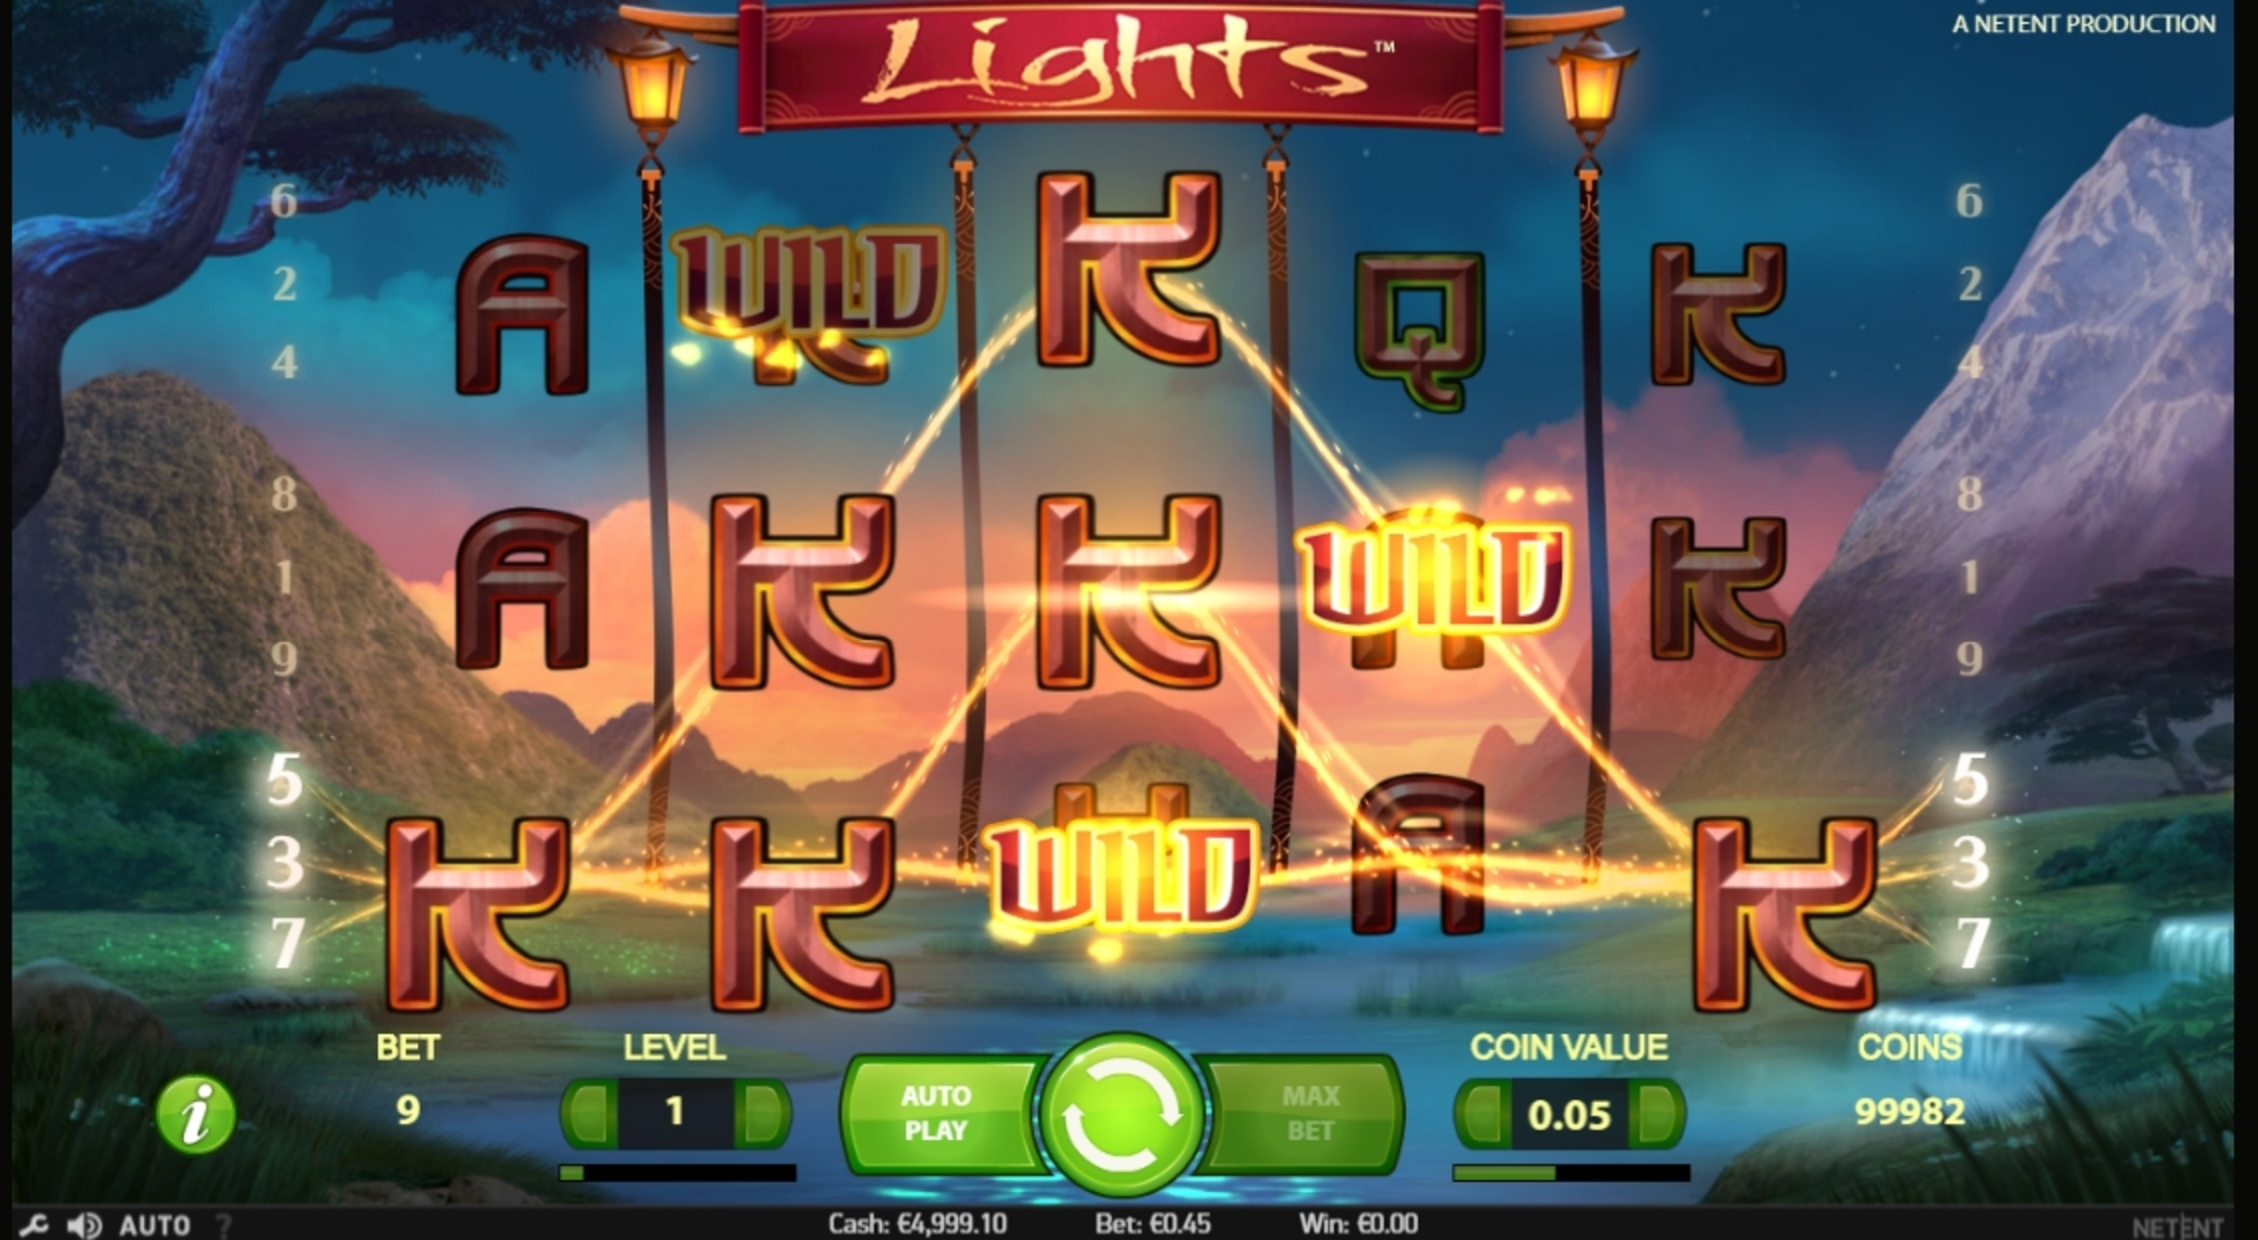 Win Money in Lights Free Slot Game by NetEnt